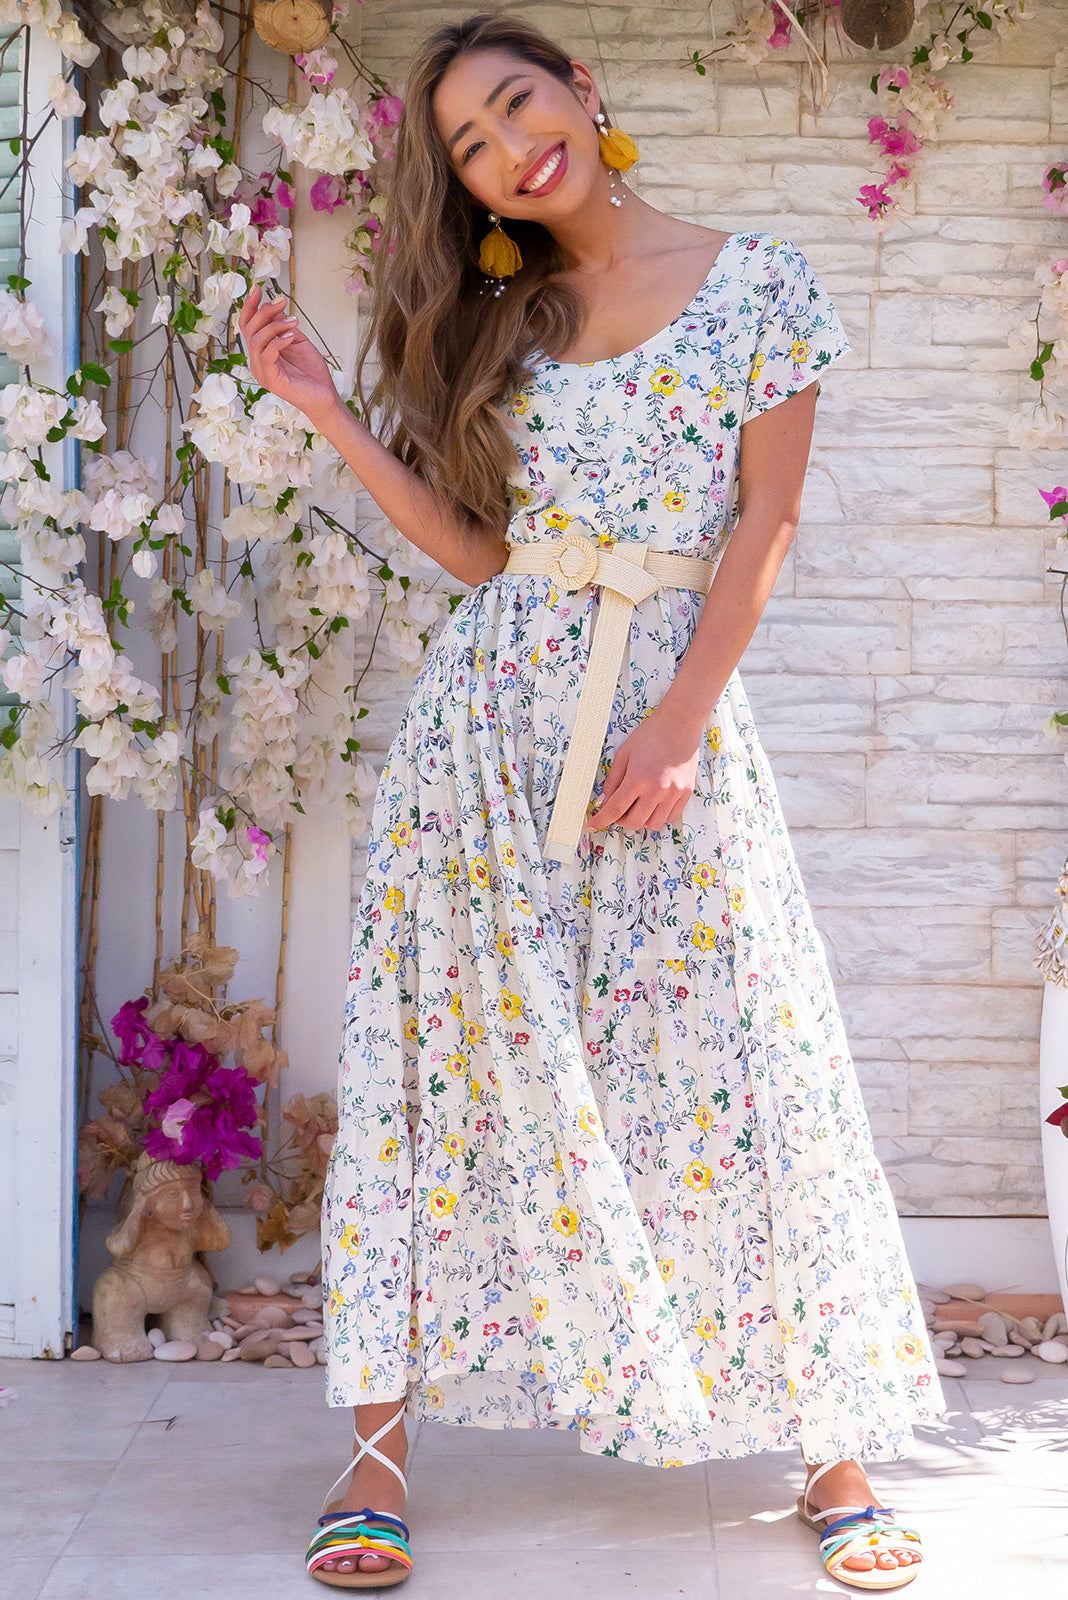 Lucky Lulu Buttercups White Maxi Dress 100% cotton fabric floral summer design, includes side pockets, cap sleeves and tiered skirt